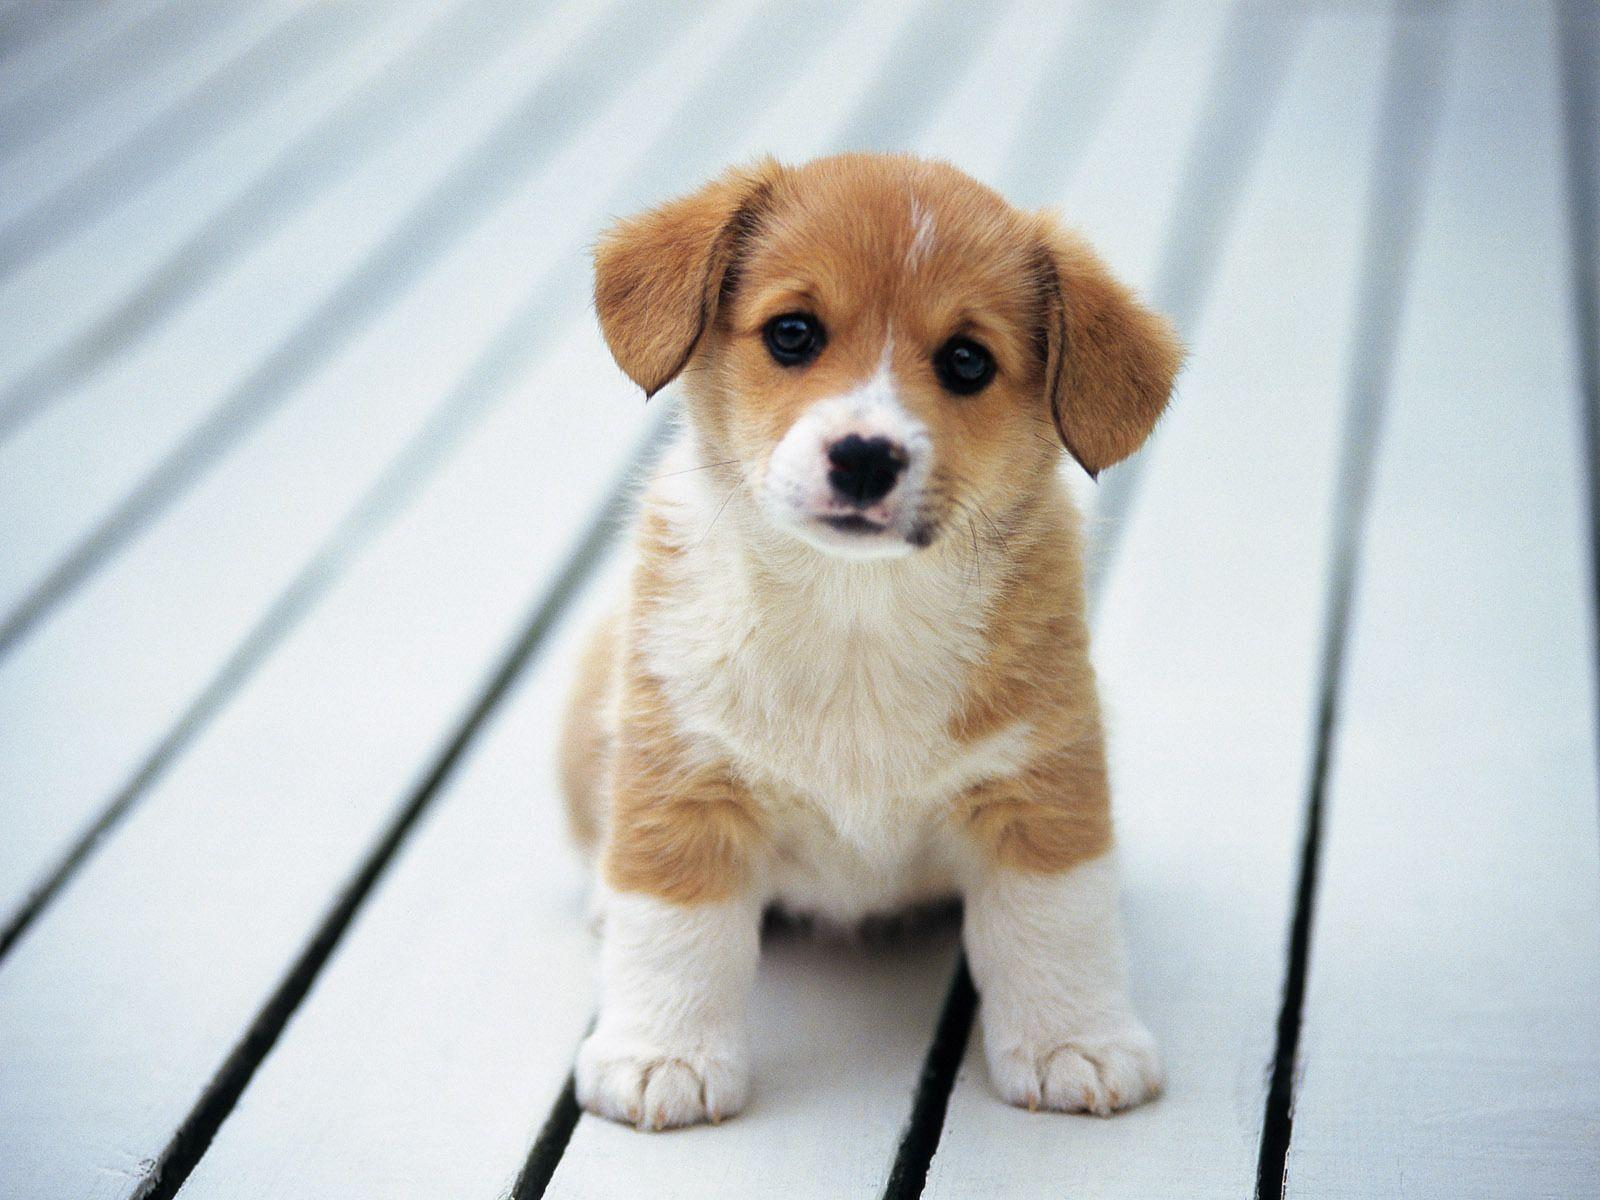 Wallpapers For > Wallpaper Of Puppies